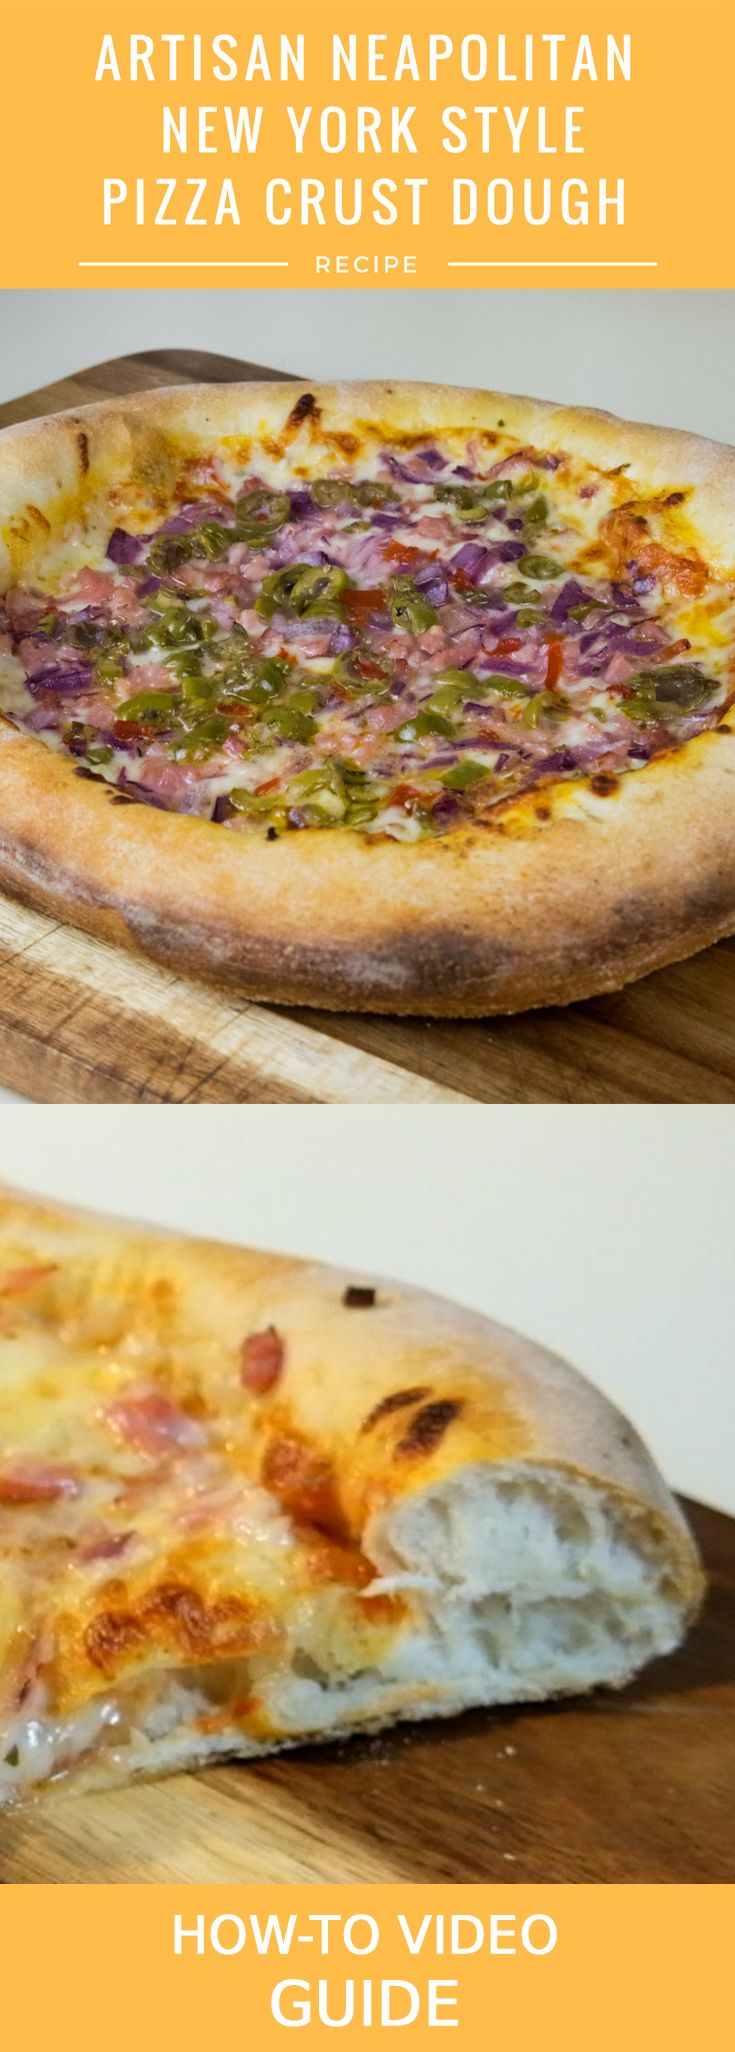 Neapolitan New York Style Pizza Crust Dough Recipe with a Video Guide of Tips and Techniques. Great for standard ovens or wood-fired pizza ovens. We love this pizza dough recipe!